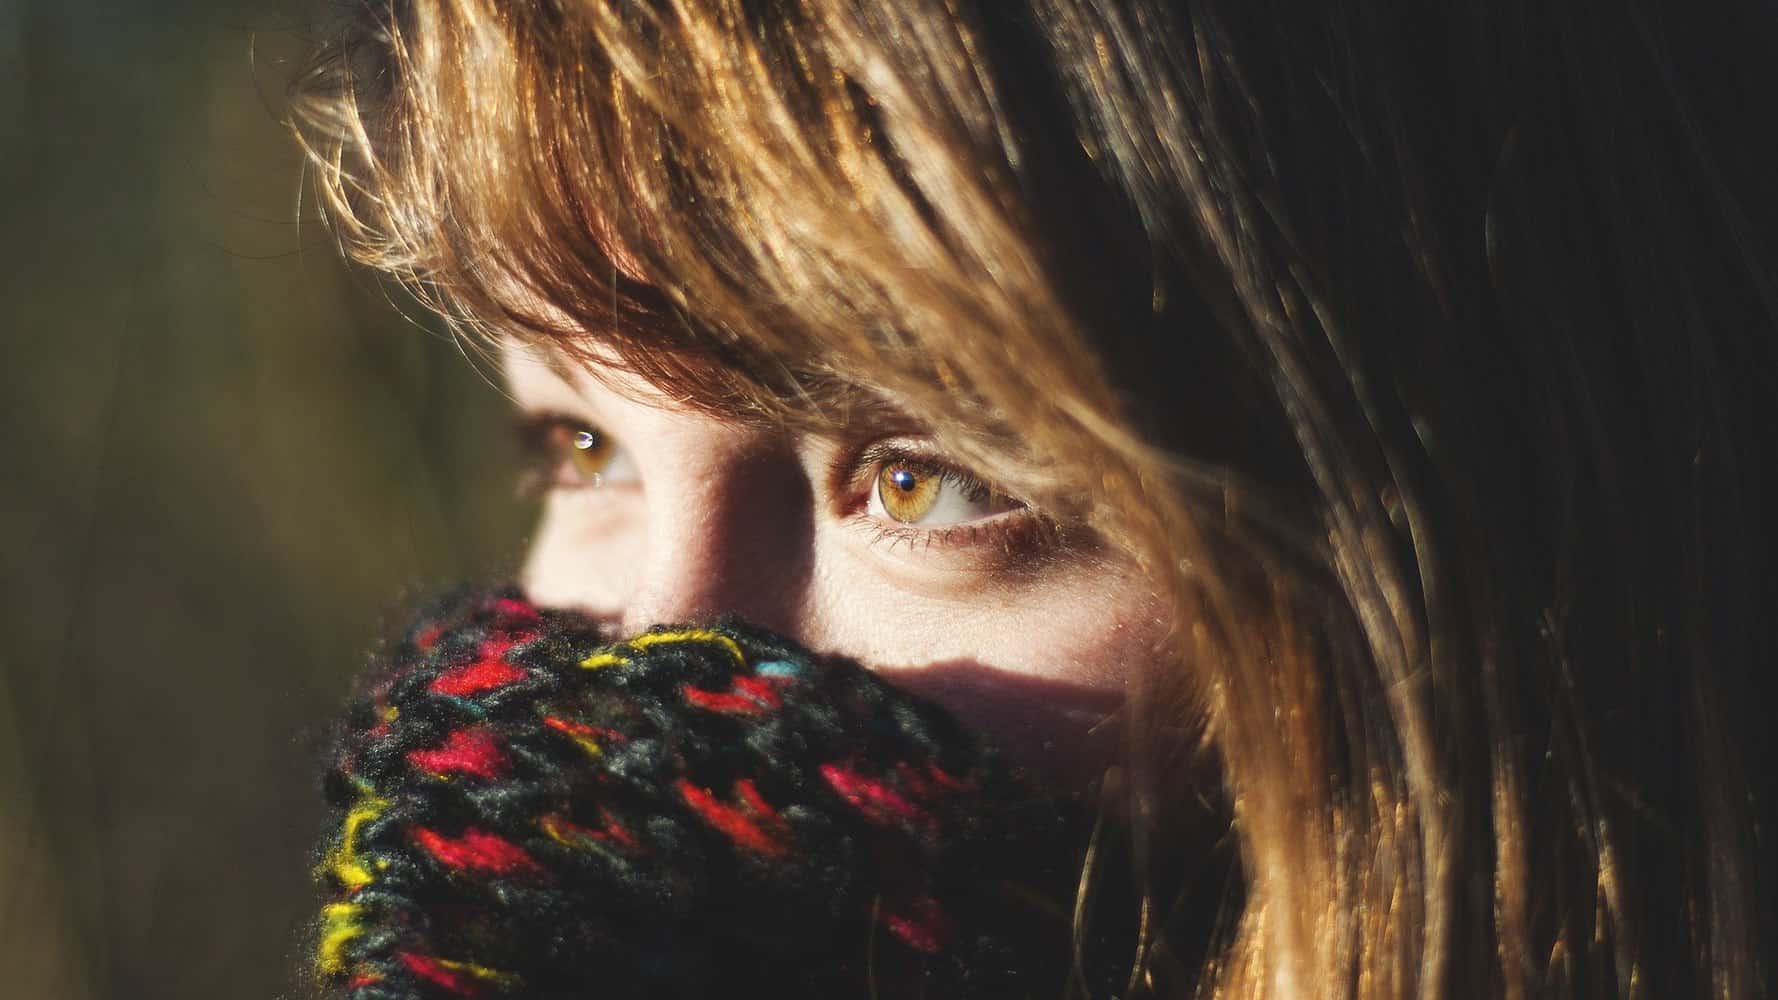 A girl wearing a scarf that covers her nose.